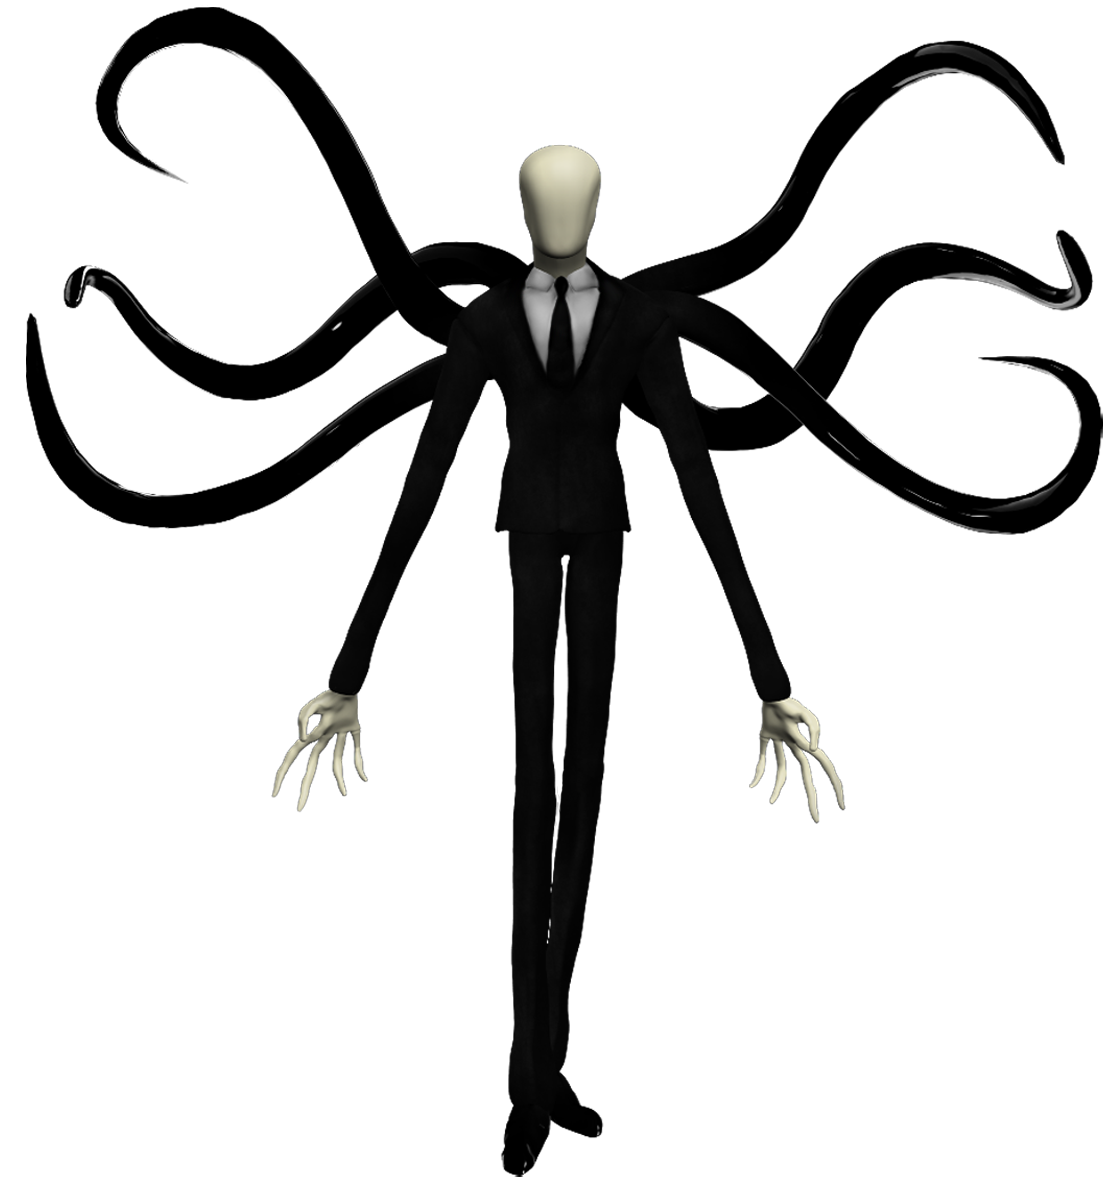 Teamwork clipart person. Slender man playstation all